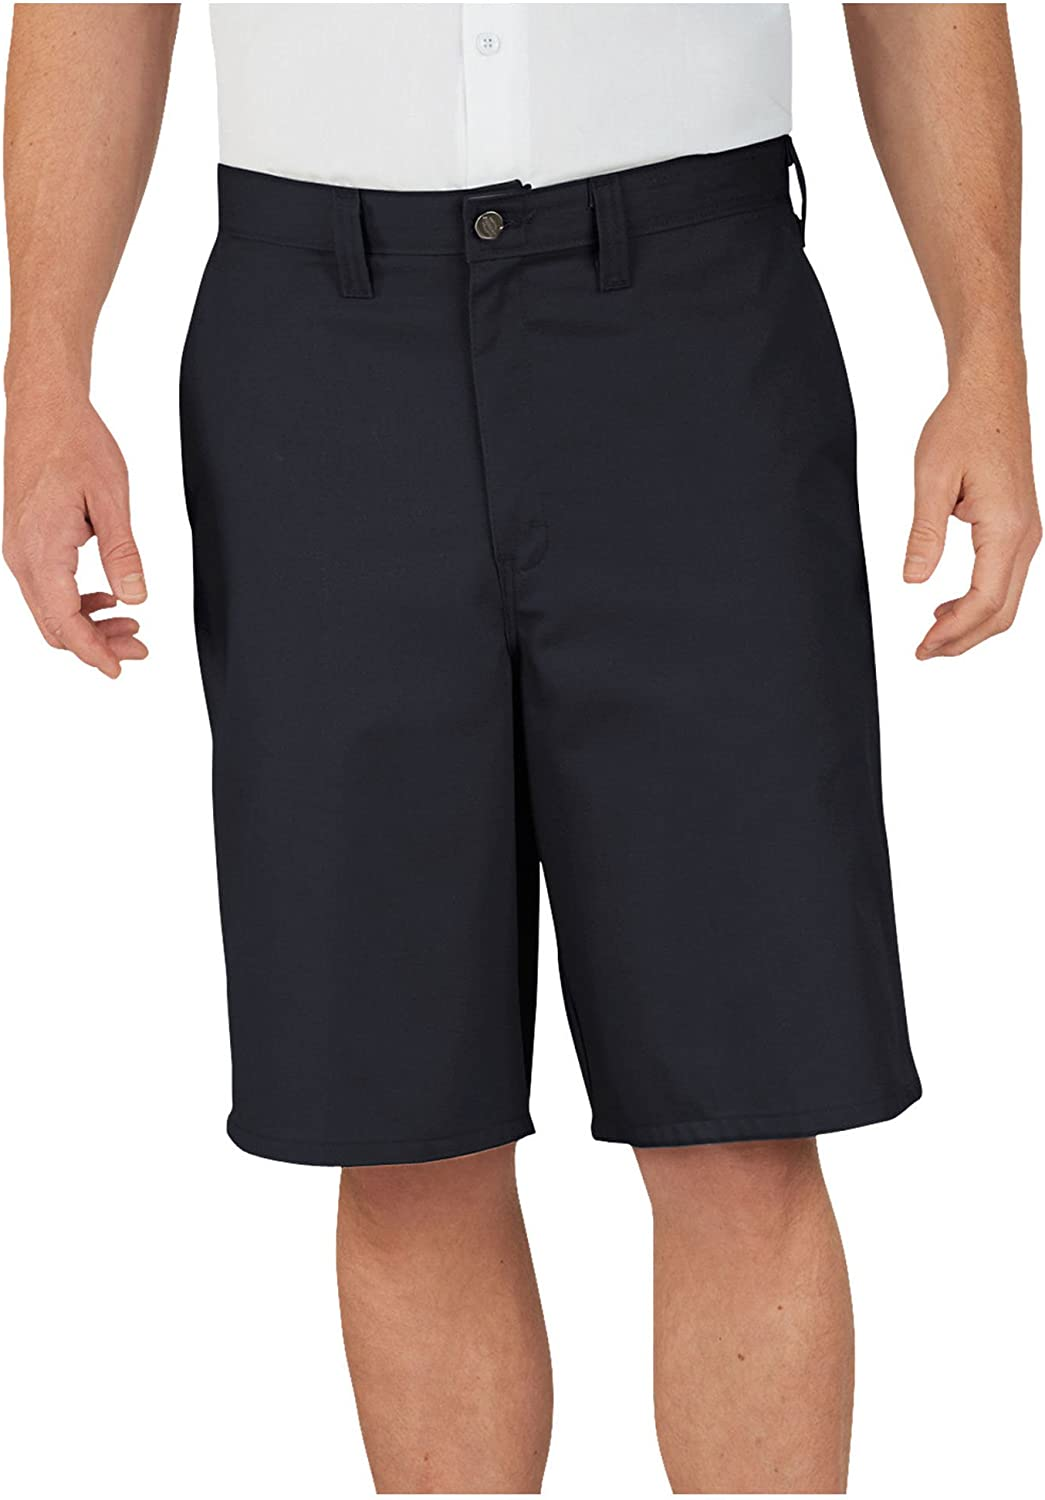 Dickies Mens 11 Industrial Relaxed Fit Multi-Use Pocket Shorts, 33, Black